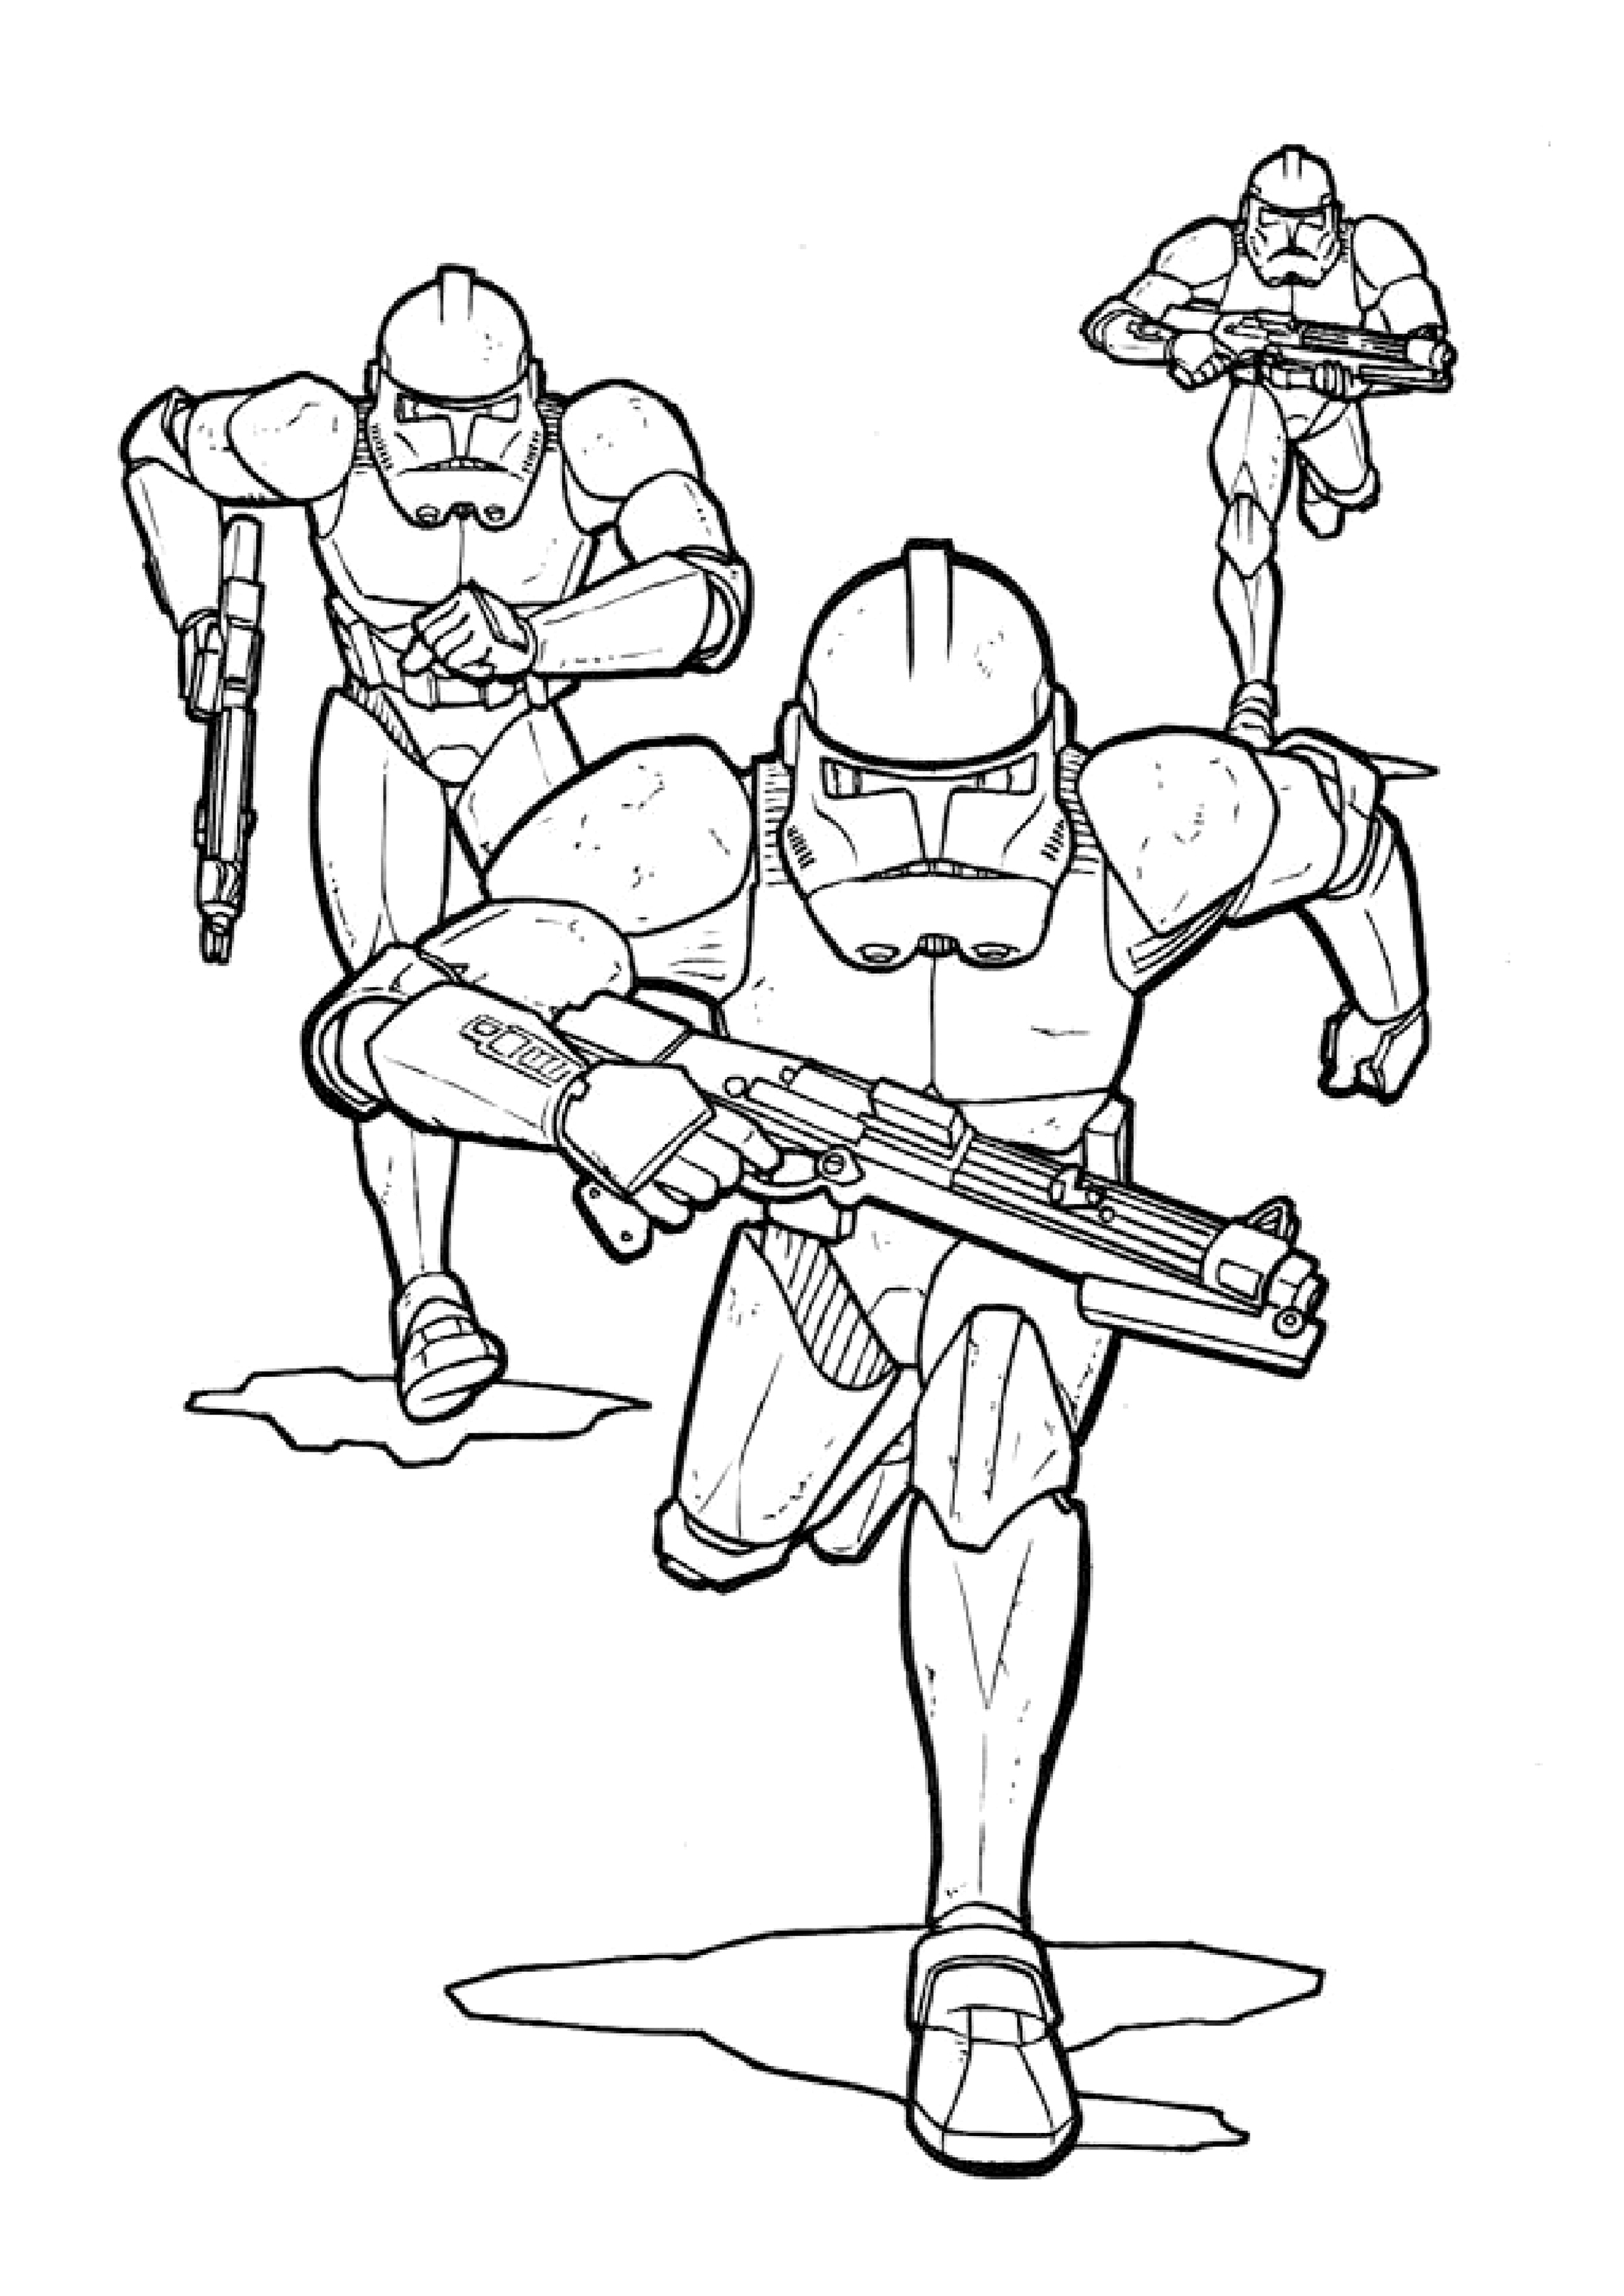 star wars coloring page star wars to download star wars kids coloring pages star page wars coloring